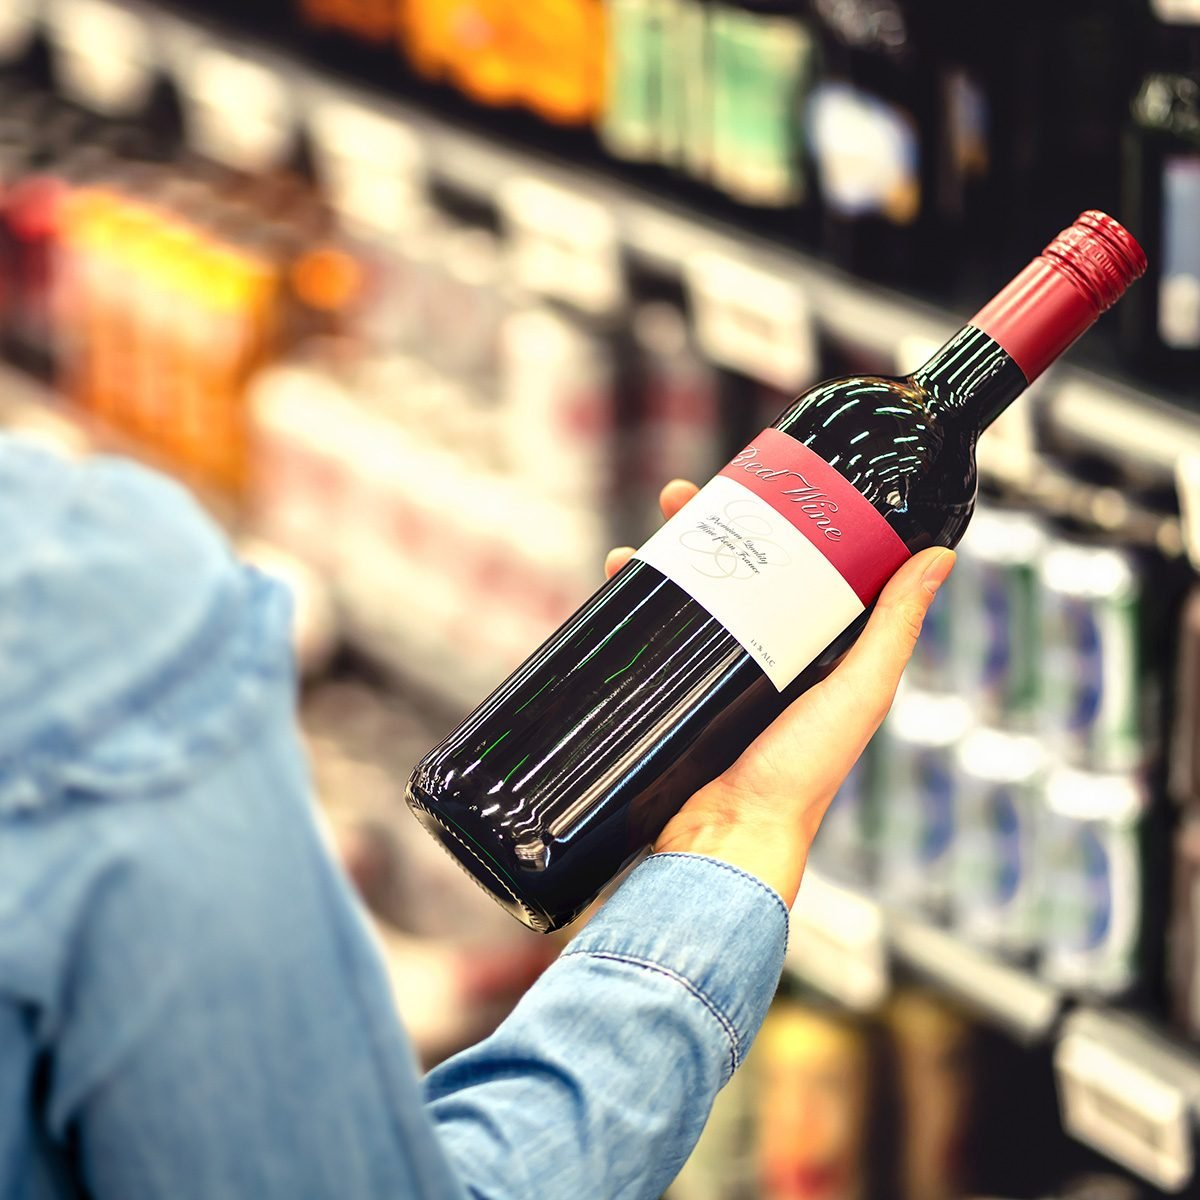 Woman reading the label of red wine bottle in liquor store or alcohol section of supermarket.